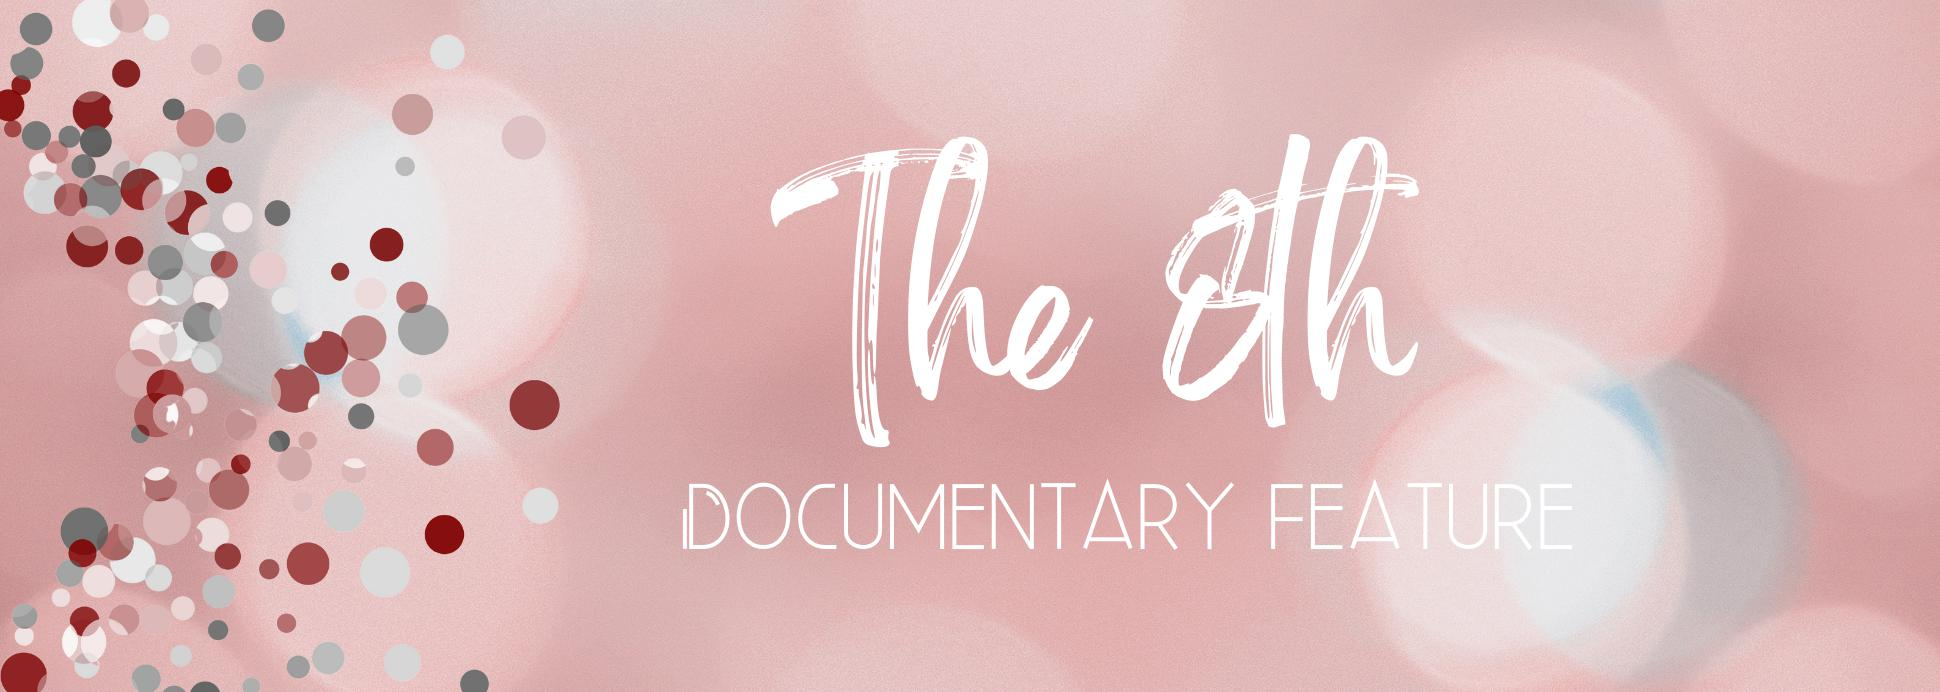 The 8TH (Documentary Feature)